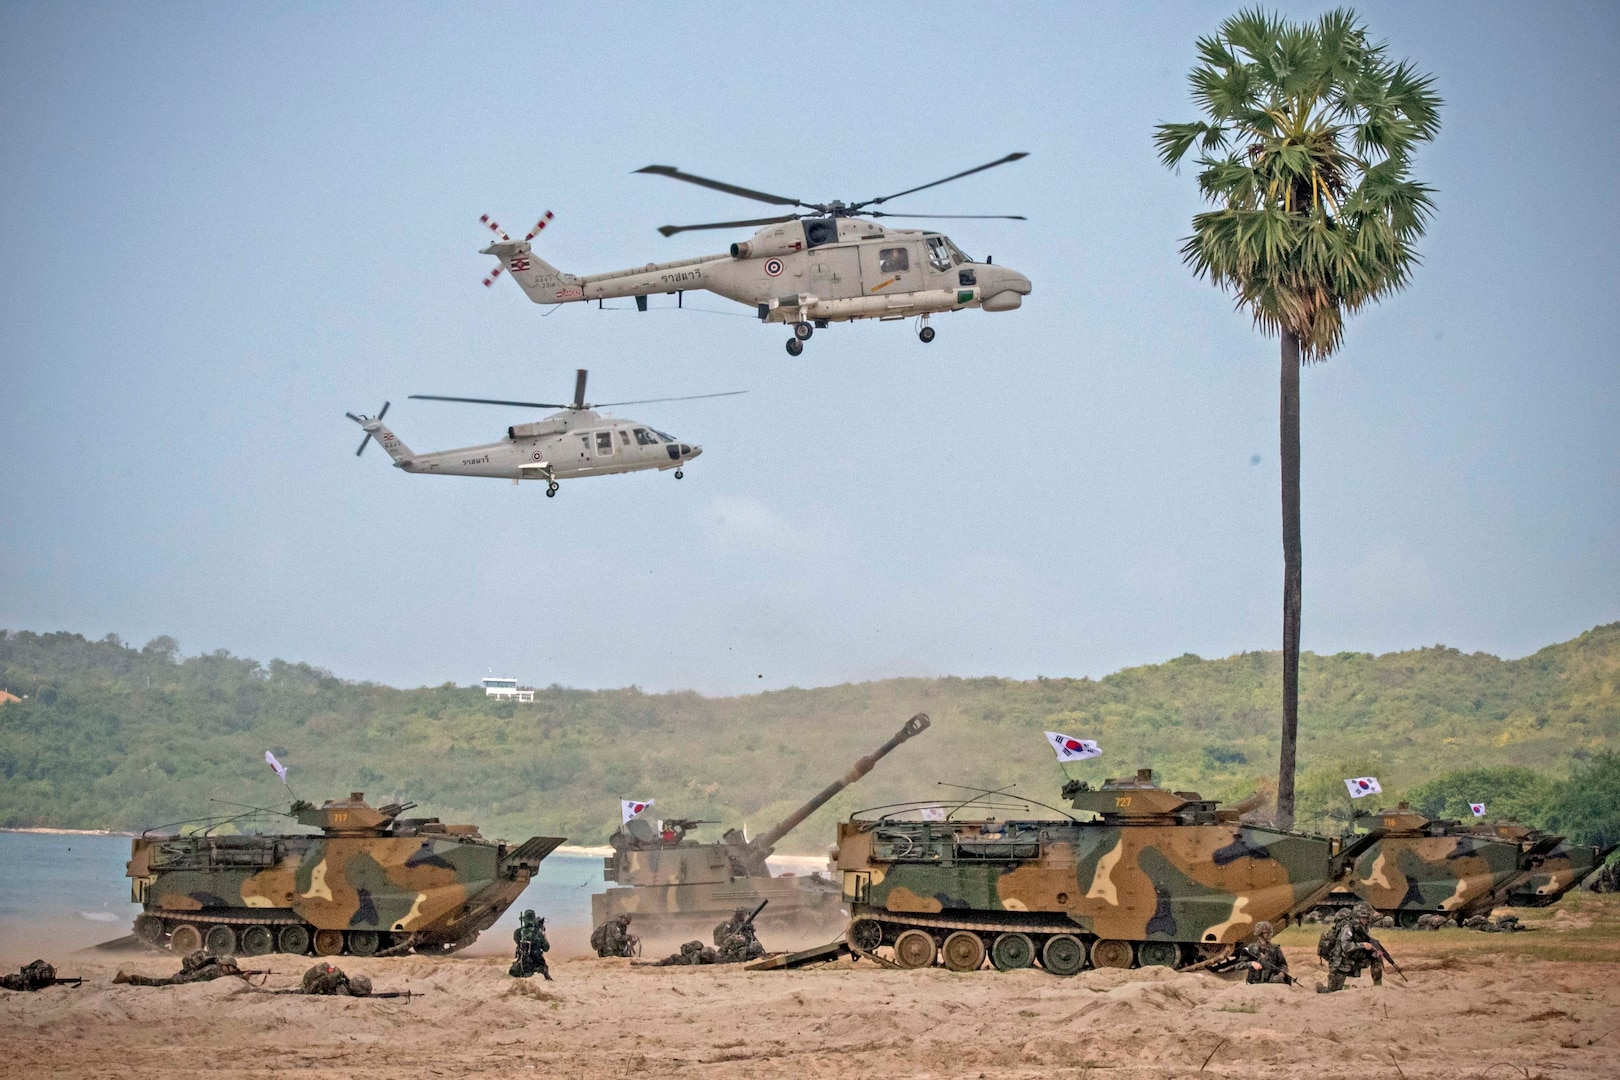 The U.S., Republic of Korea, and Royal Thai armed forces launch an amphibious assault on Hat Yao Beach, Rayong province, Thailand during Exercise Cobra Gold 2018, Feb. 17, 2018. CG18 provides a venue for the United States, allied and partner nations to advance interoperability and increase partner capacity in planning and executing complex and realistic multinational force and combined task force operations. CG18 is an annual exercise conducted in the Kingdom of Thailand held from Feb. 13-23 with seven full participating nations